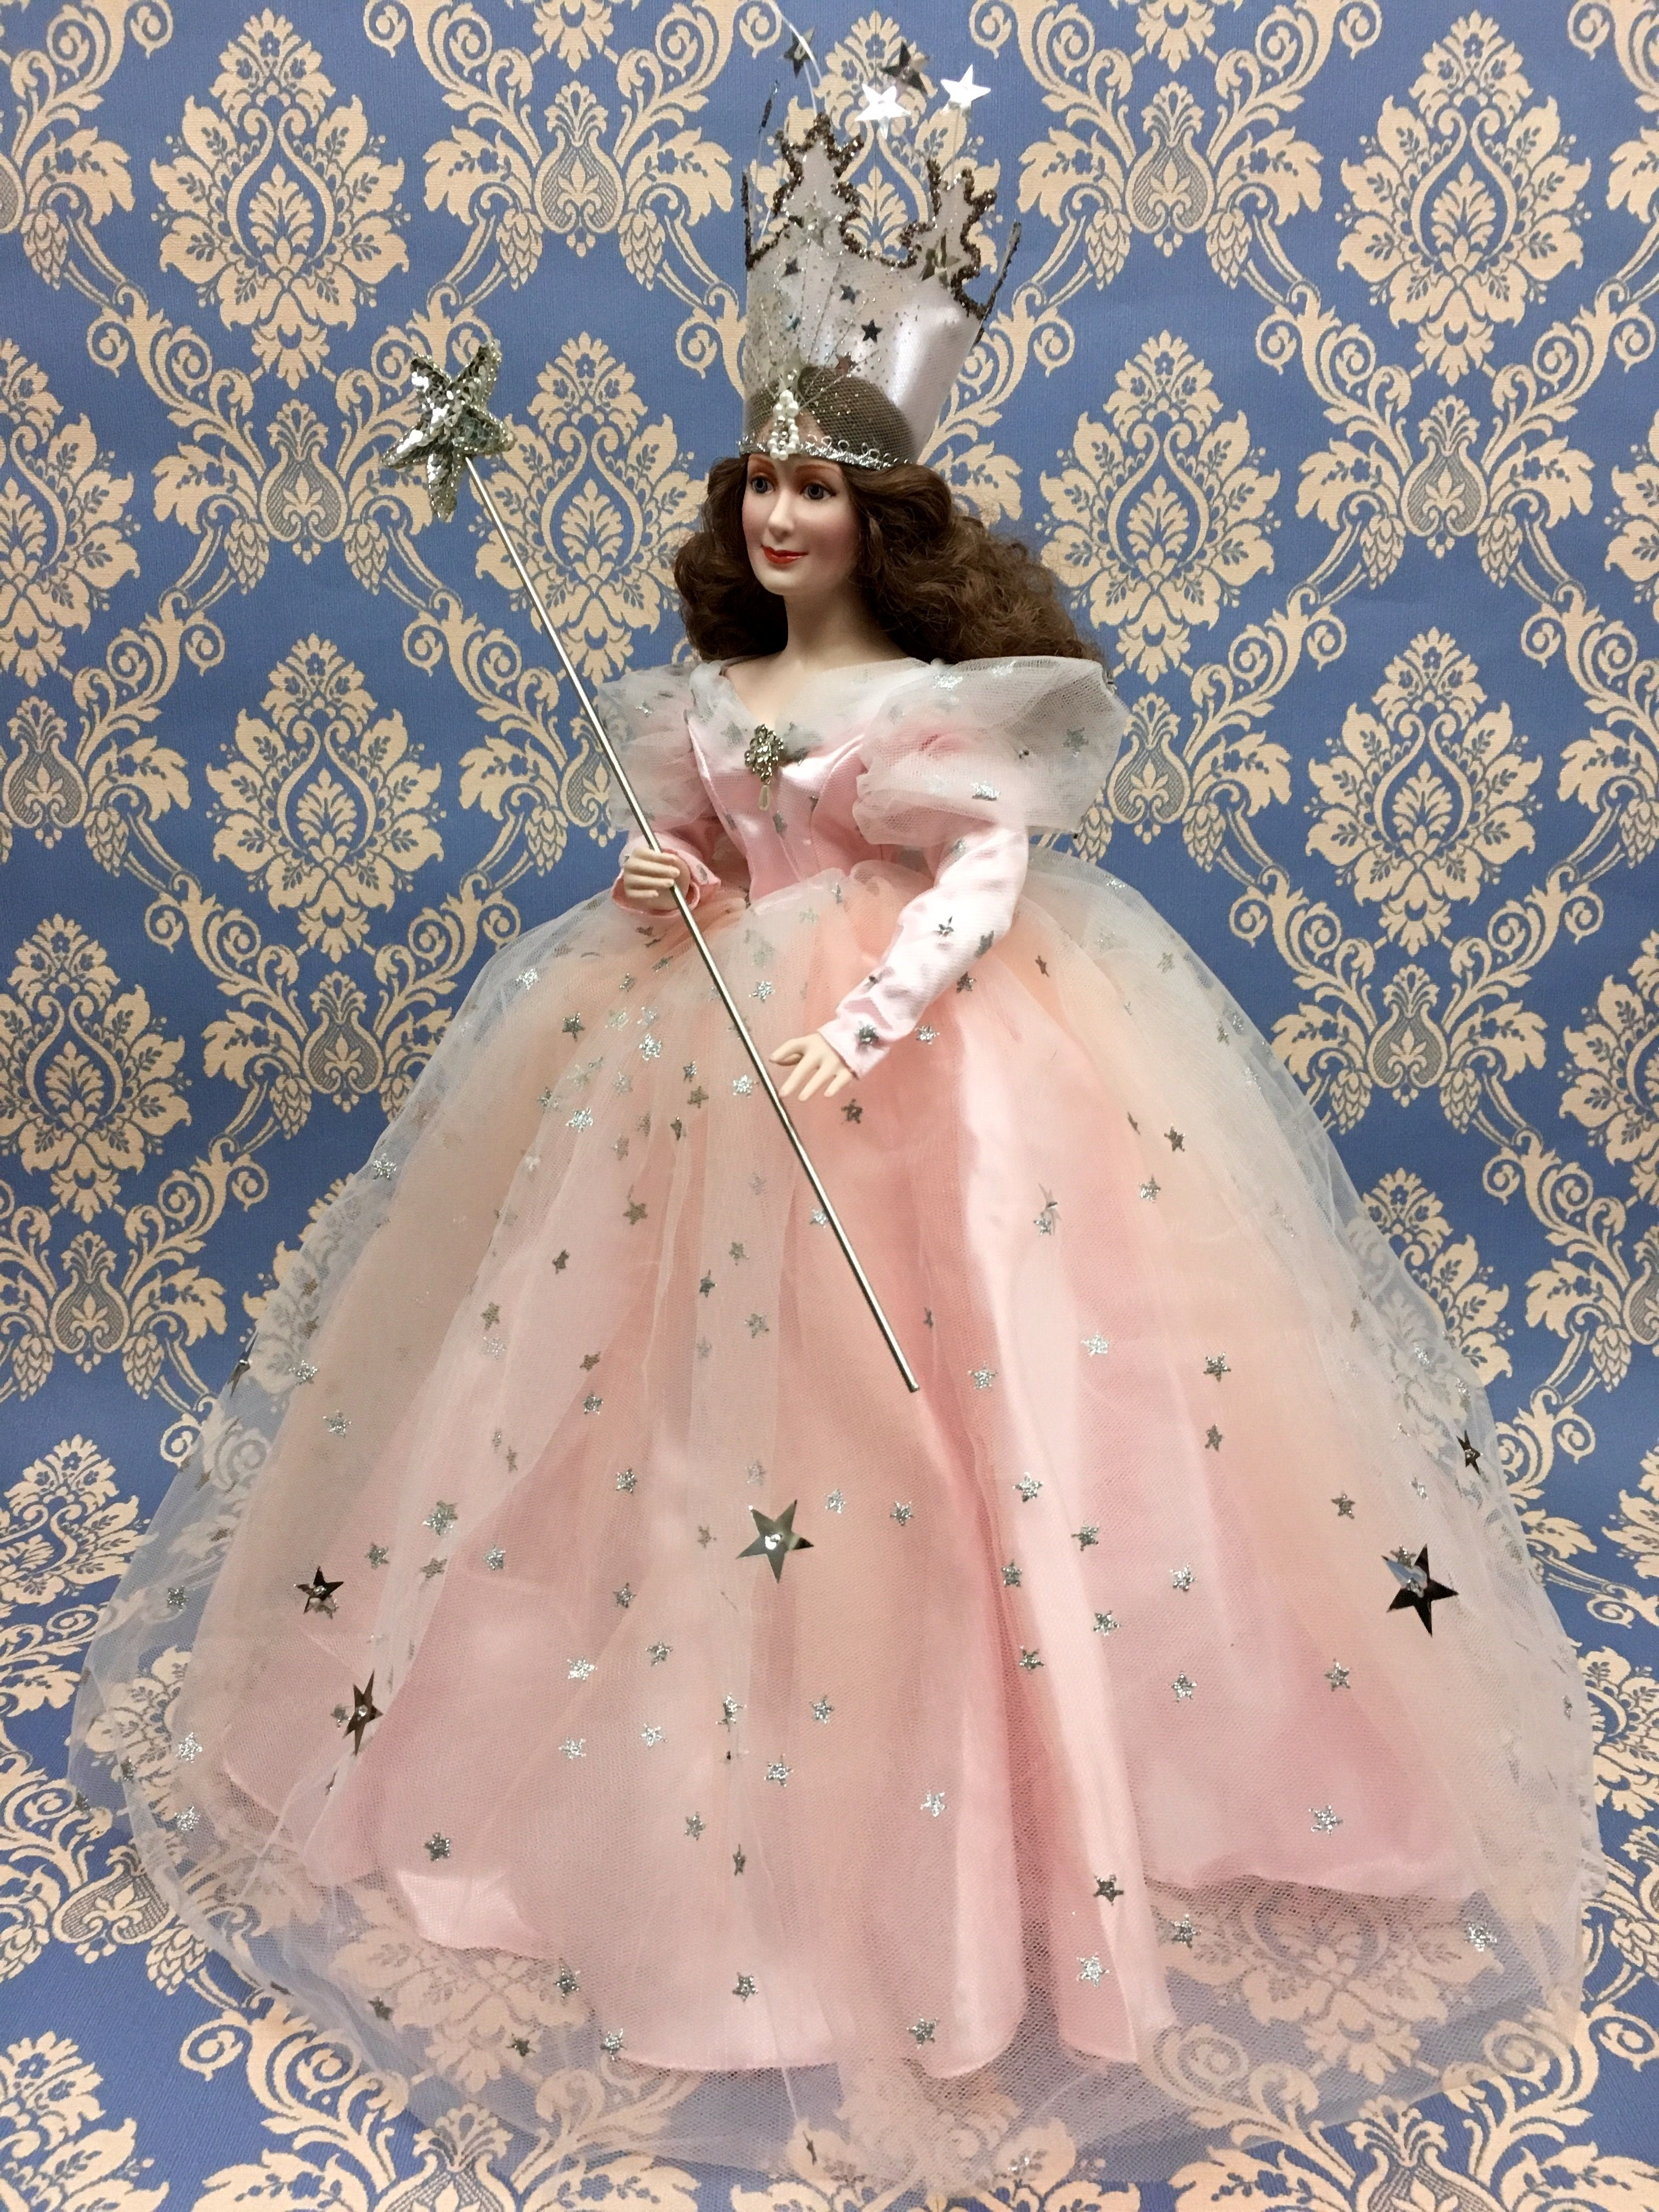 glinda the good witch of the north as portrayed by billie burke